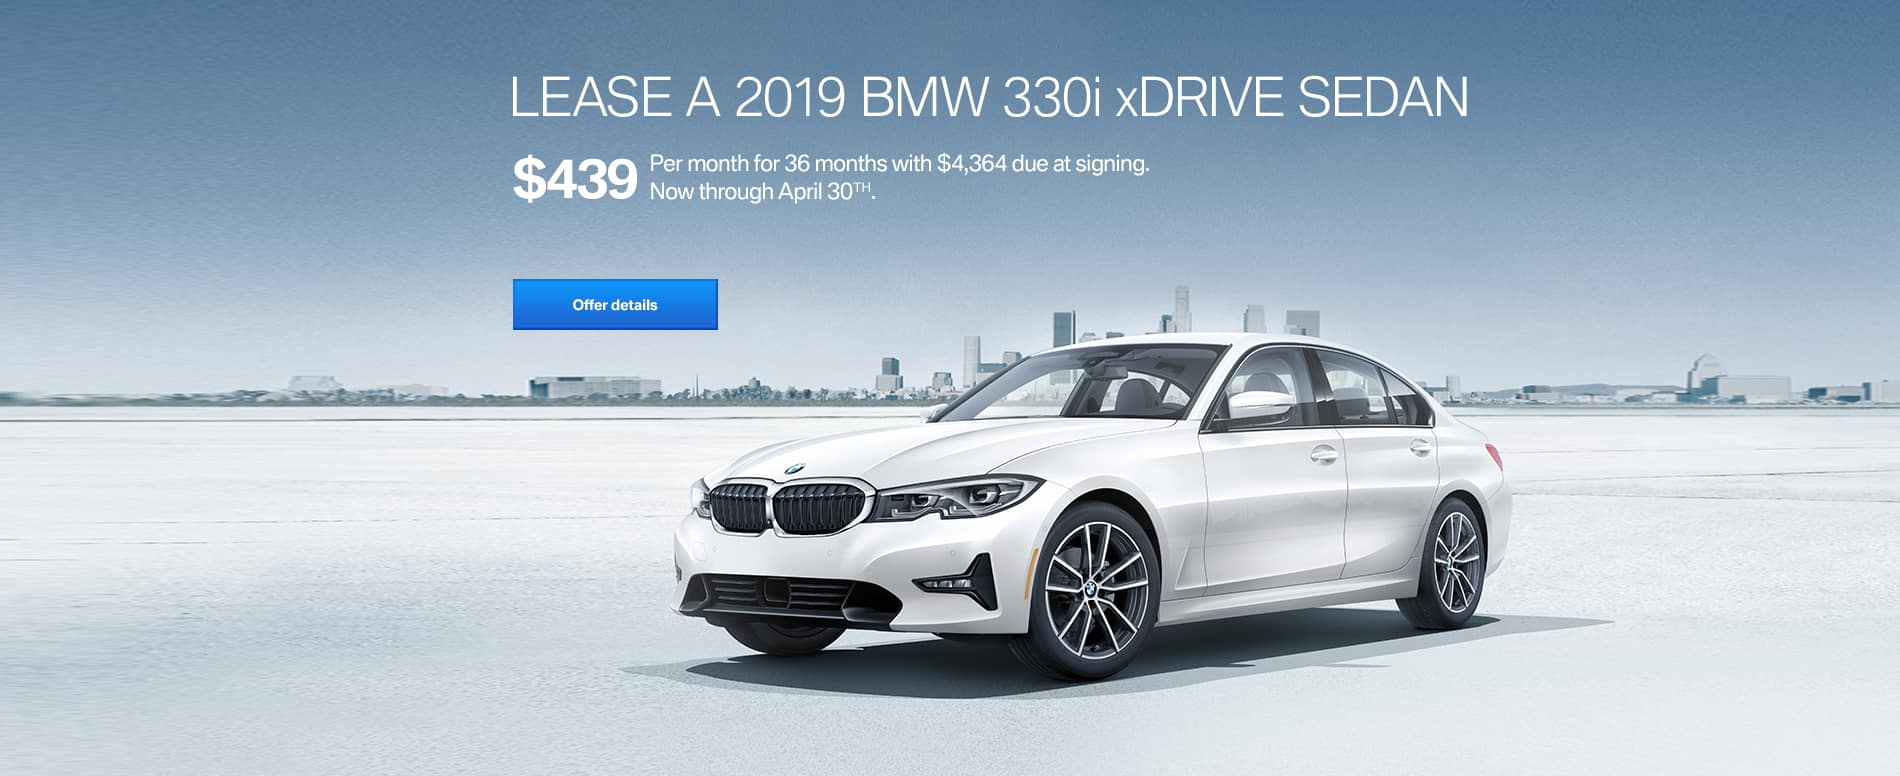 2019 BMW 330i xDRIVE april update